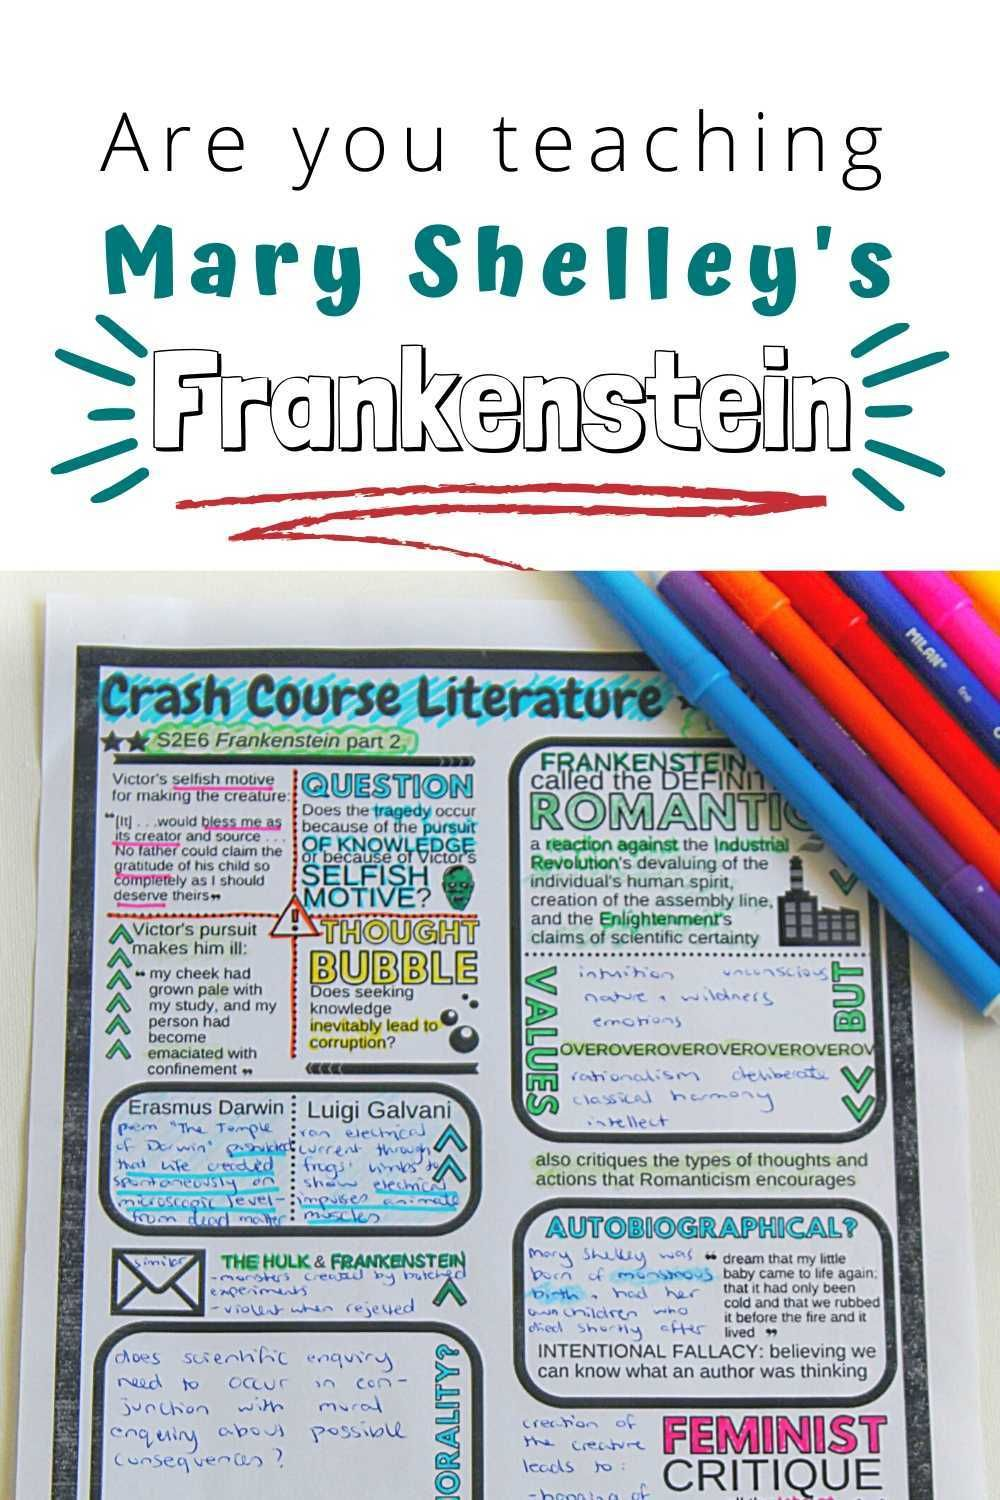 Printables For Frankenstein By Mary Shelley In 2020 Crash Course Literature Crash Course Visual Note Taking